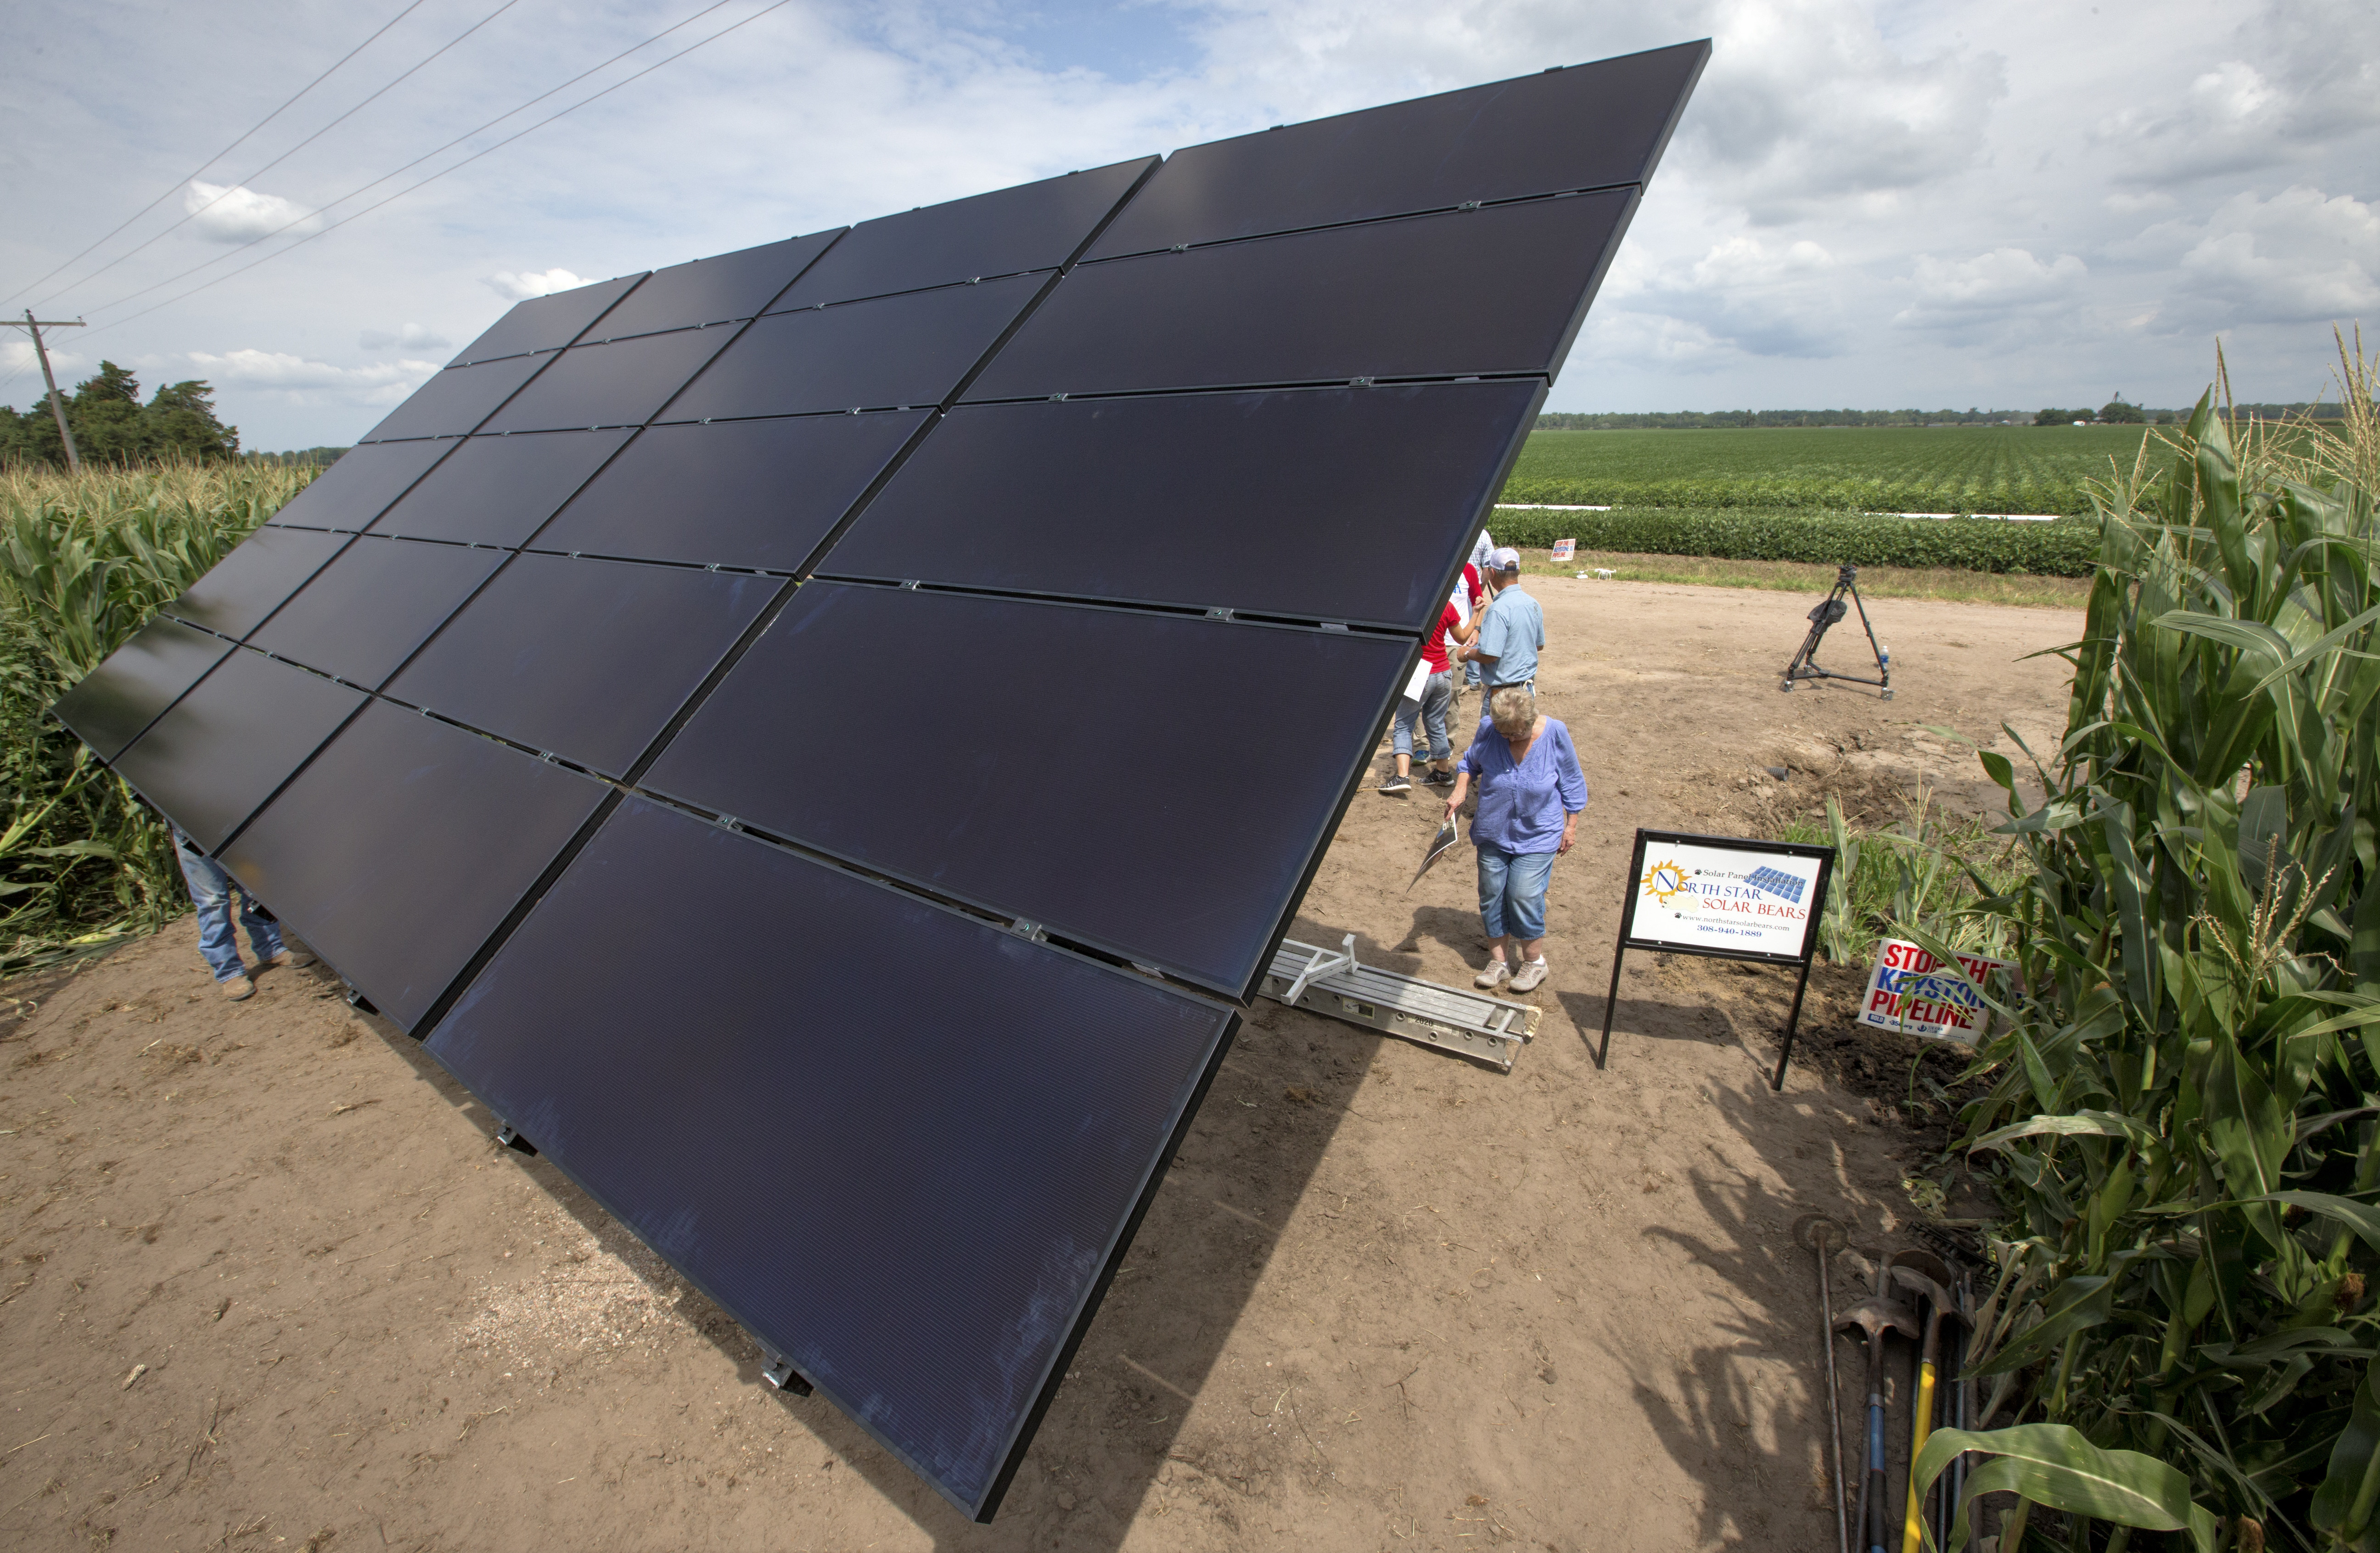 In this July 29, 2017 photo, an array of solar panels is seen on the land of corn farmer Jim Carlson of Silver Creek, Ne., in the proposed path of the Keystone XL pipeline. Despite new uncertainty over whether TransCanada, the builder of the Keystone XL pipeline will continue the project, longtime opponents in Nebraska aren't letting their guard down and neither are law enforcement officials who may have to react to protests if it wins approval. (AP Photo/Nati Harnik)